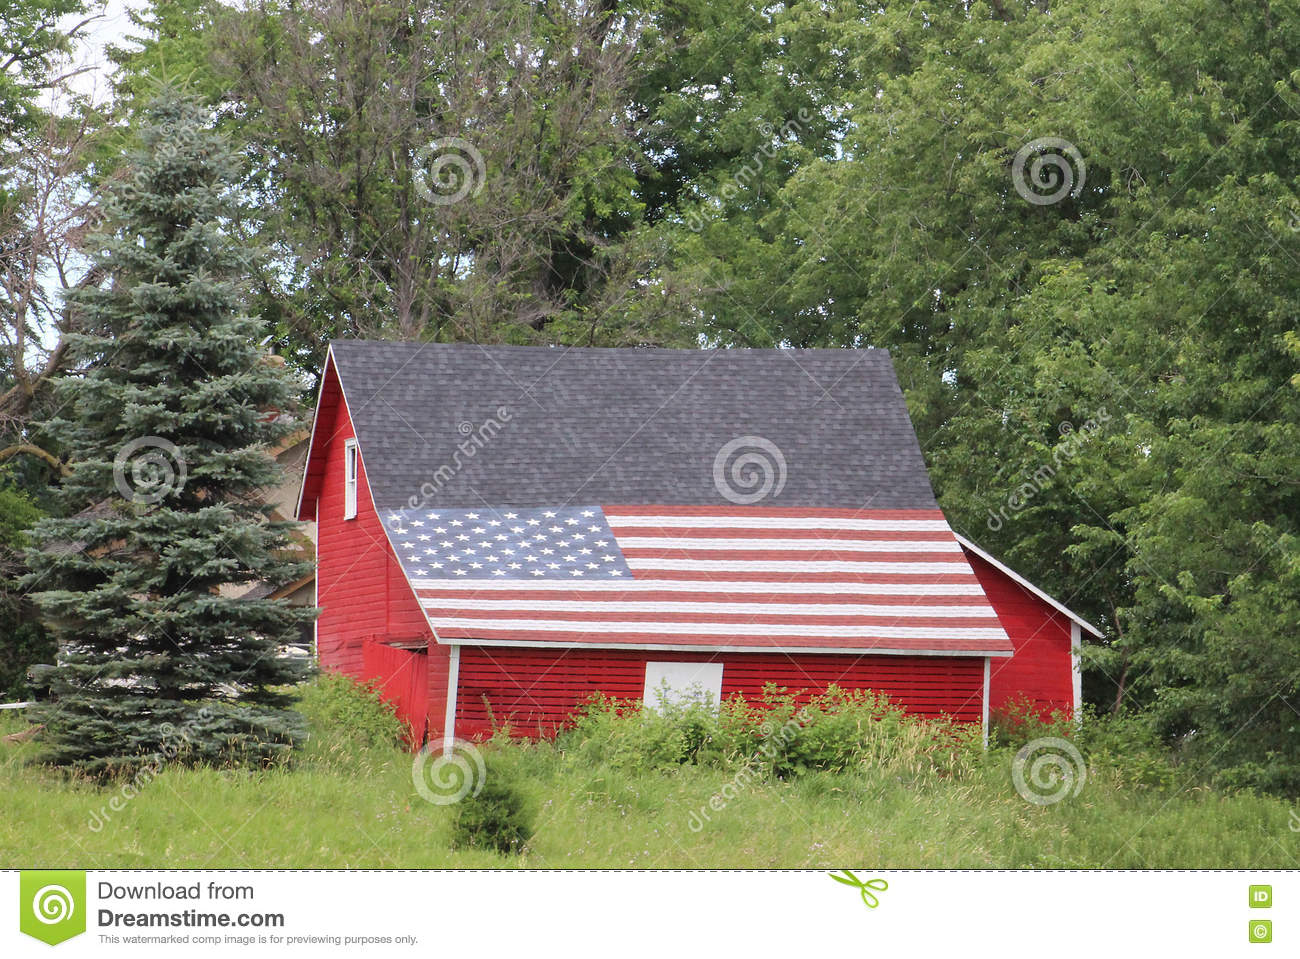 American Flag on a Barn Roof